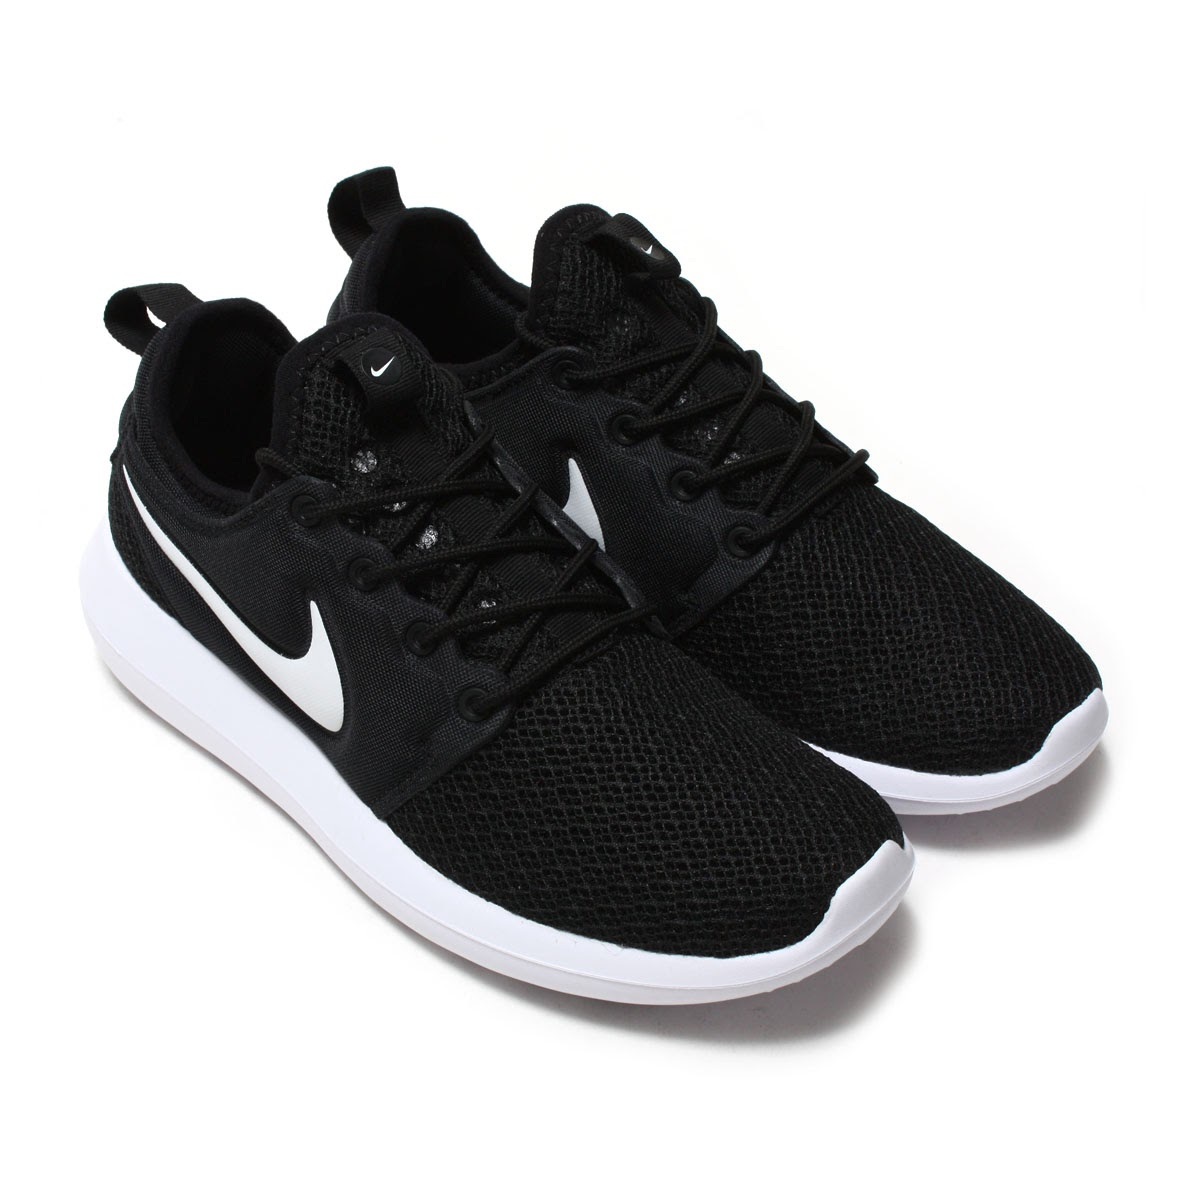 0a494094c7fcf atmos pink  NIKE W ROSHE TWO (ナイキウィメンズローシ 2) BLACK BLACK ...